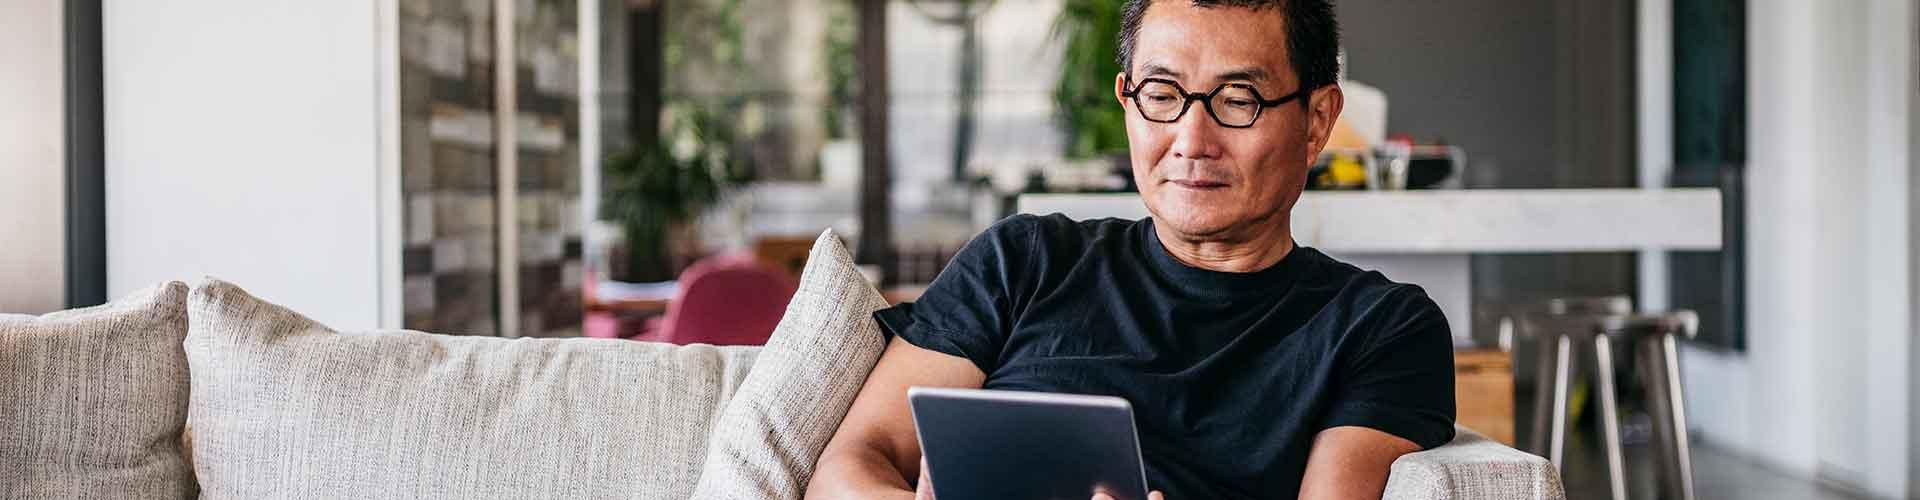 Man sits on couch looking at tablet